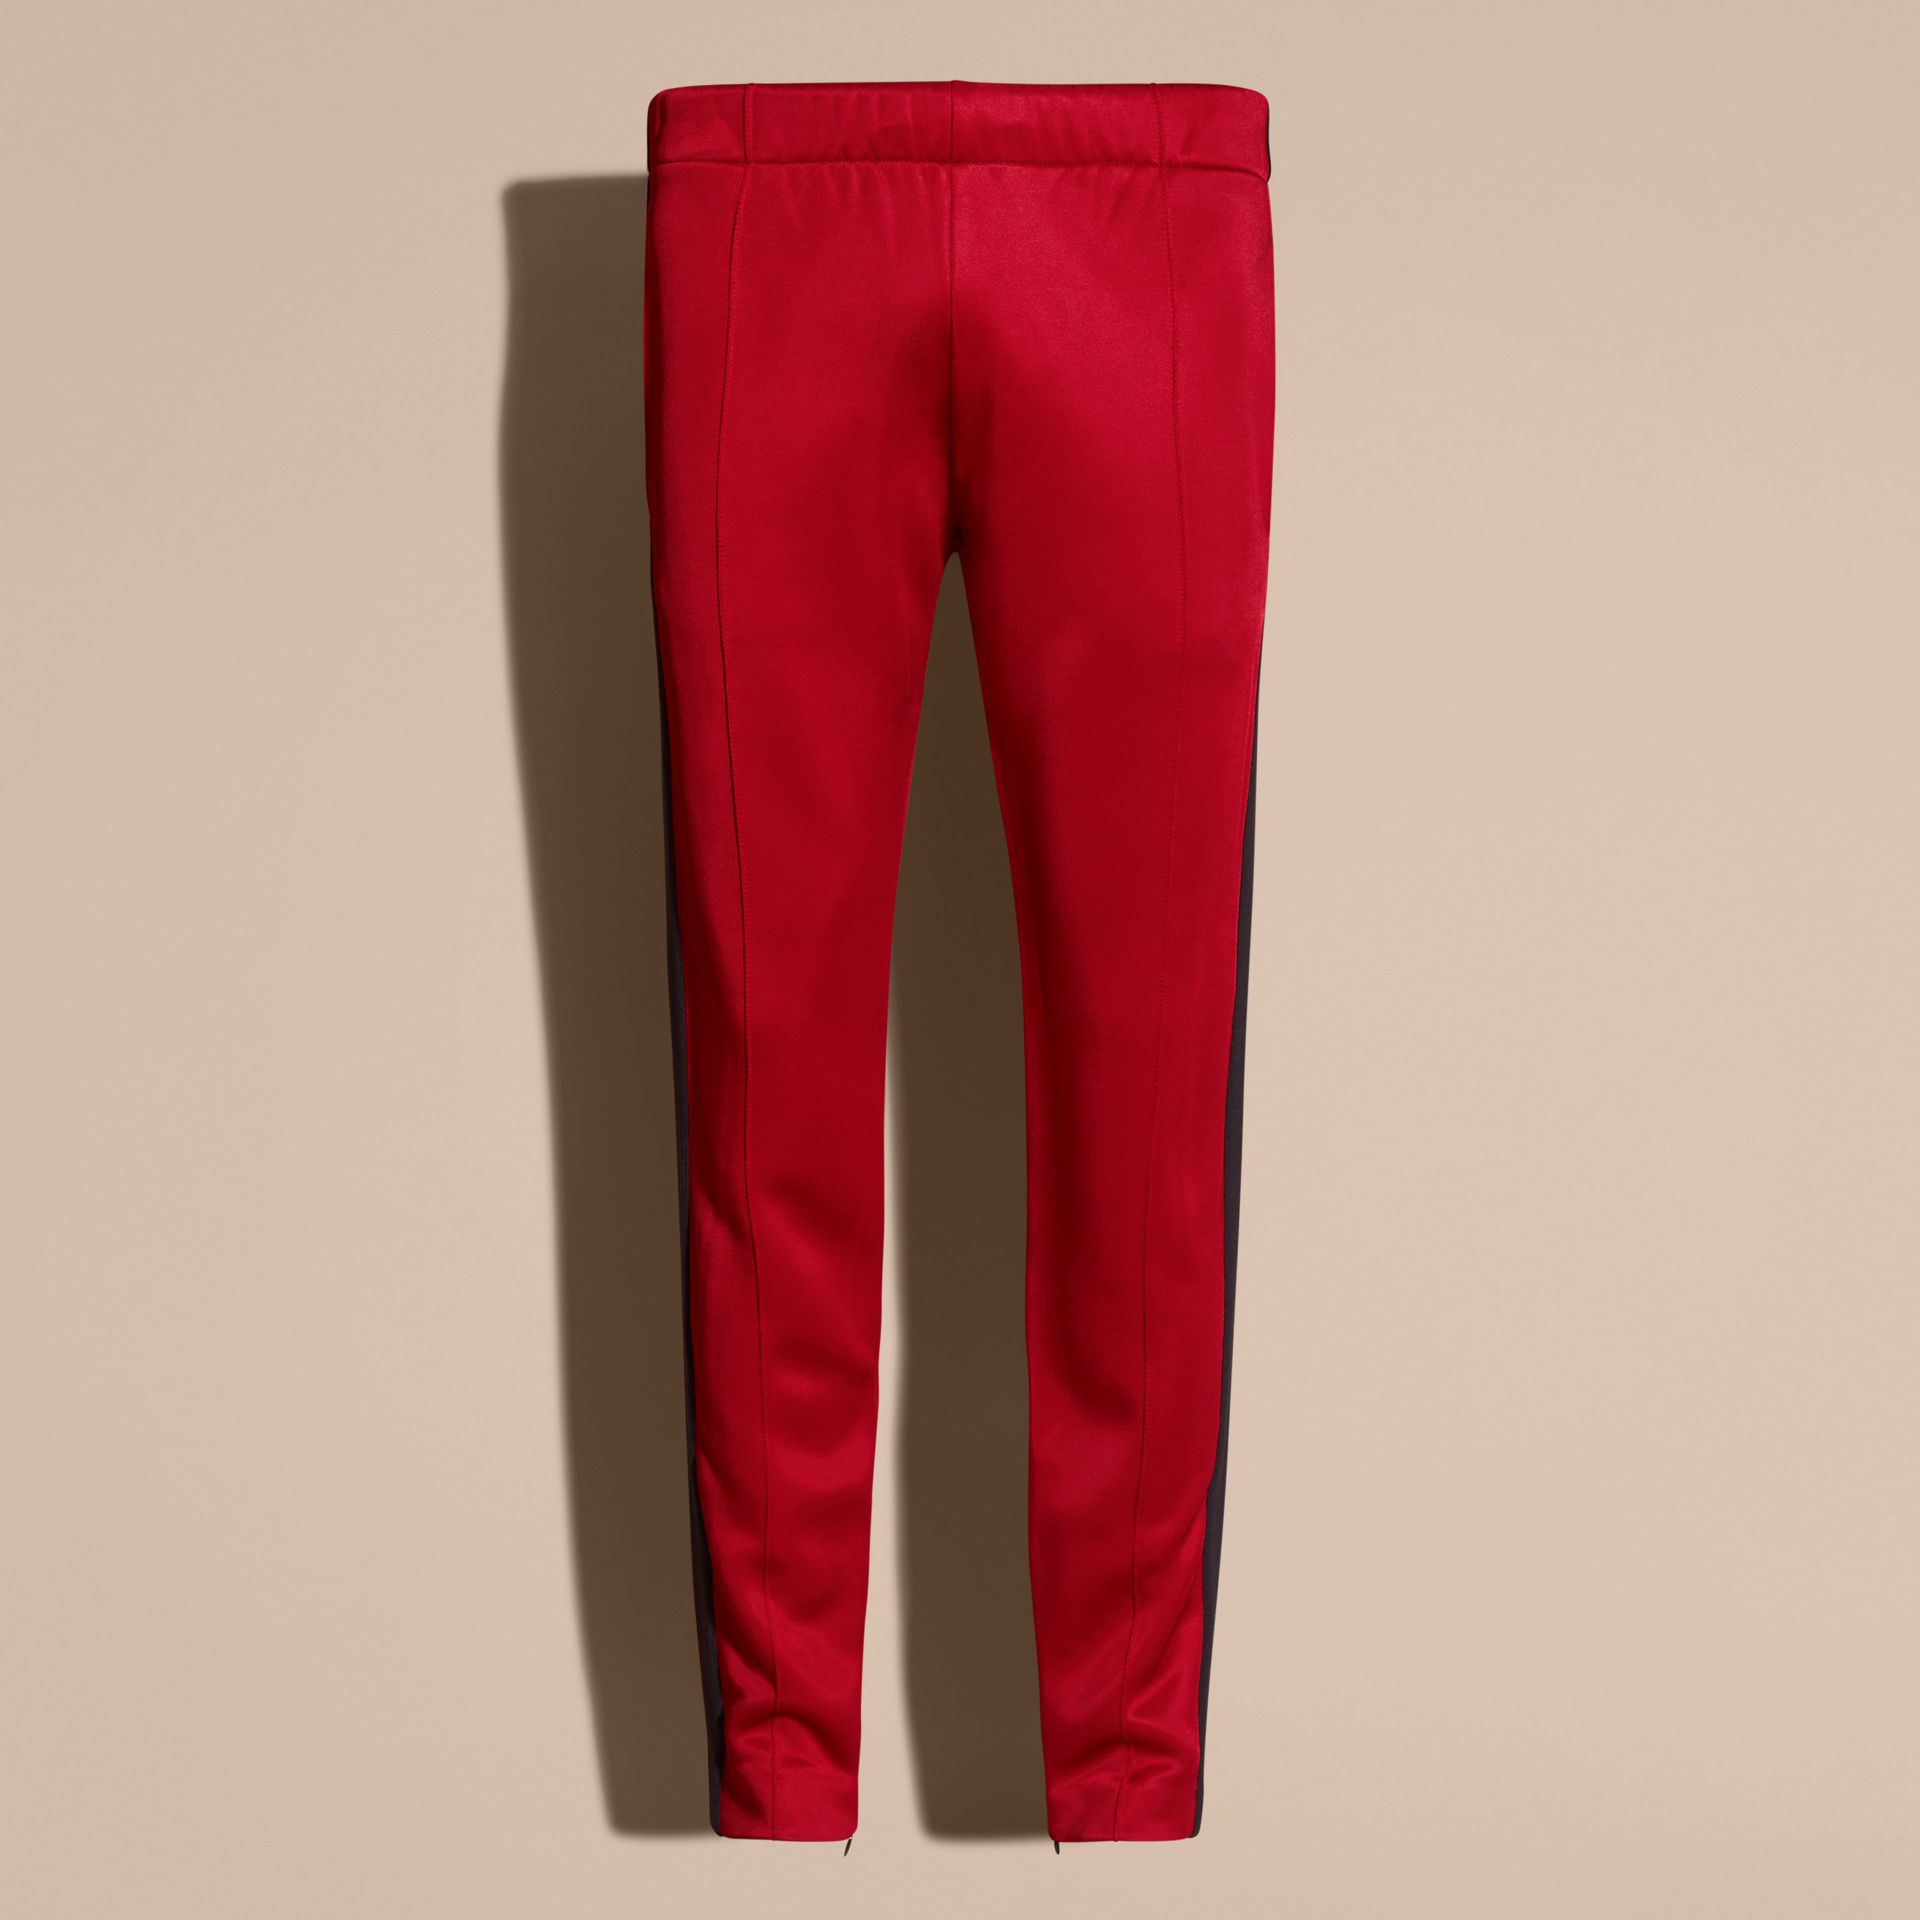 Rouge canneberge Pantalon de survêtement ultra-brillant Rouge Canneberge - photo de la galerie 4